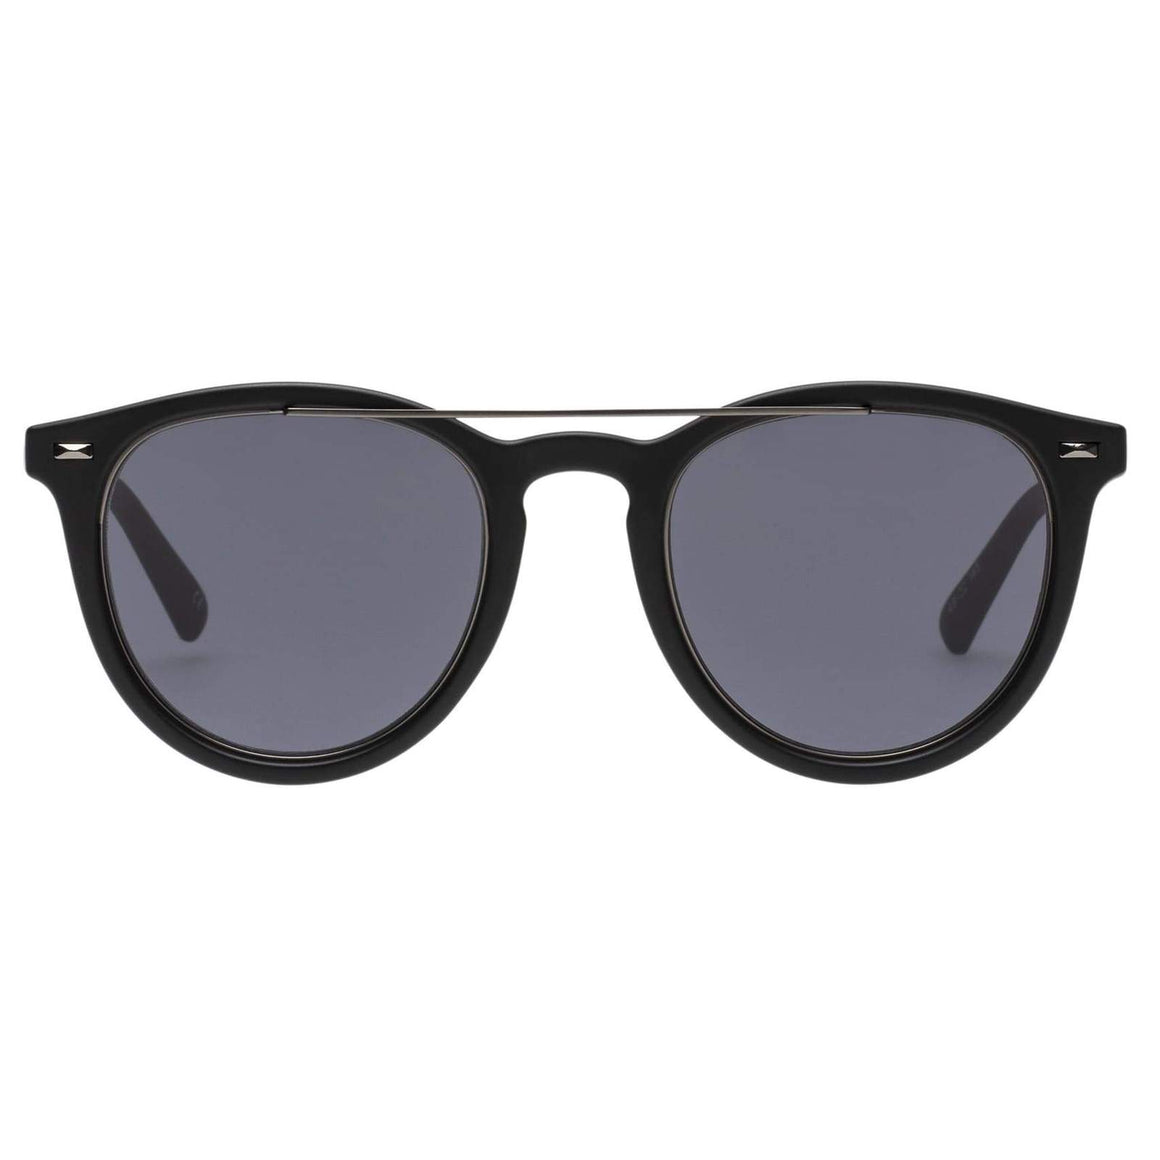 Fire Starter Claw - Matte Black shop online or in store at Wallace&Gibbs